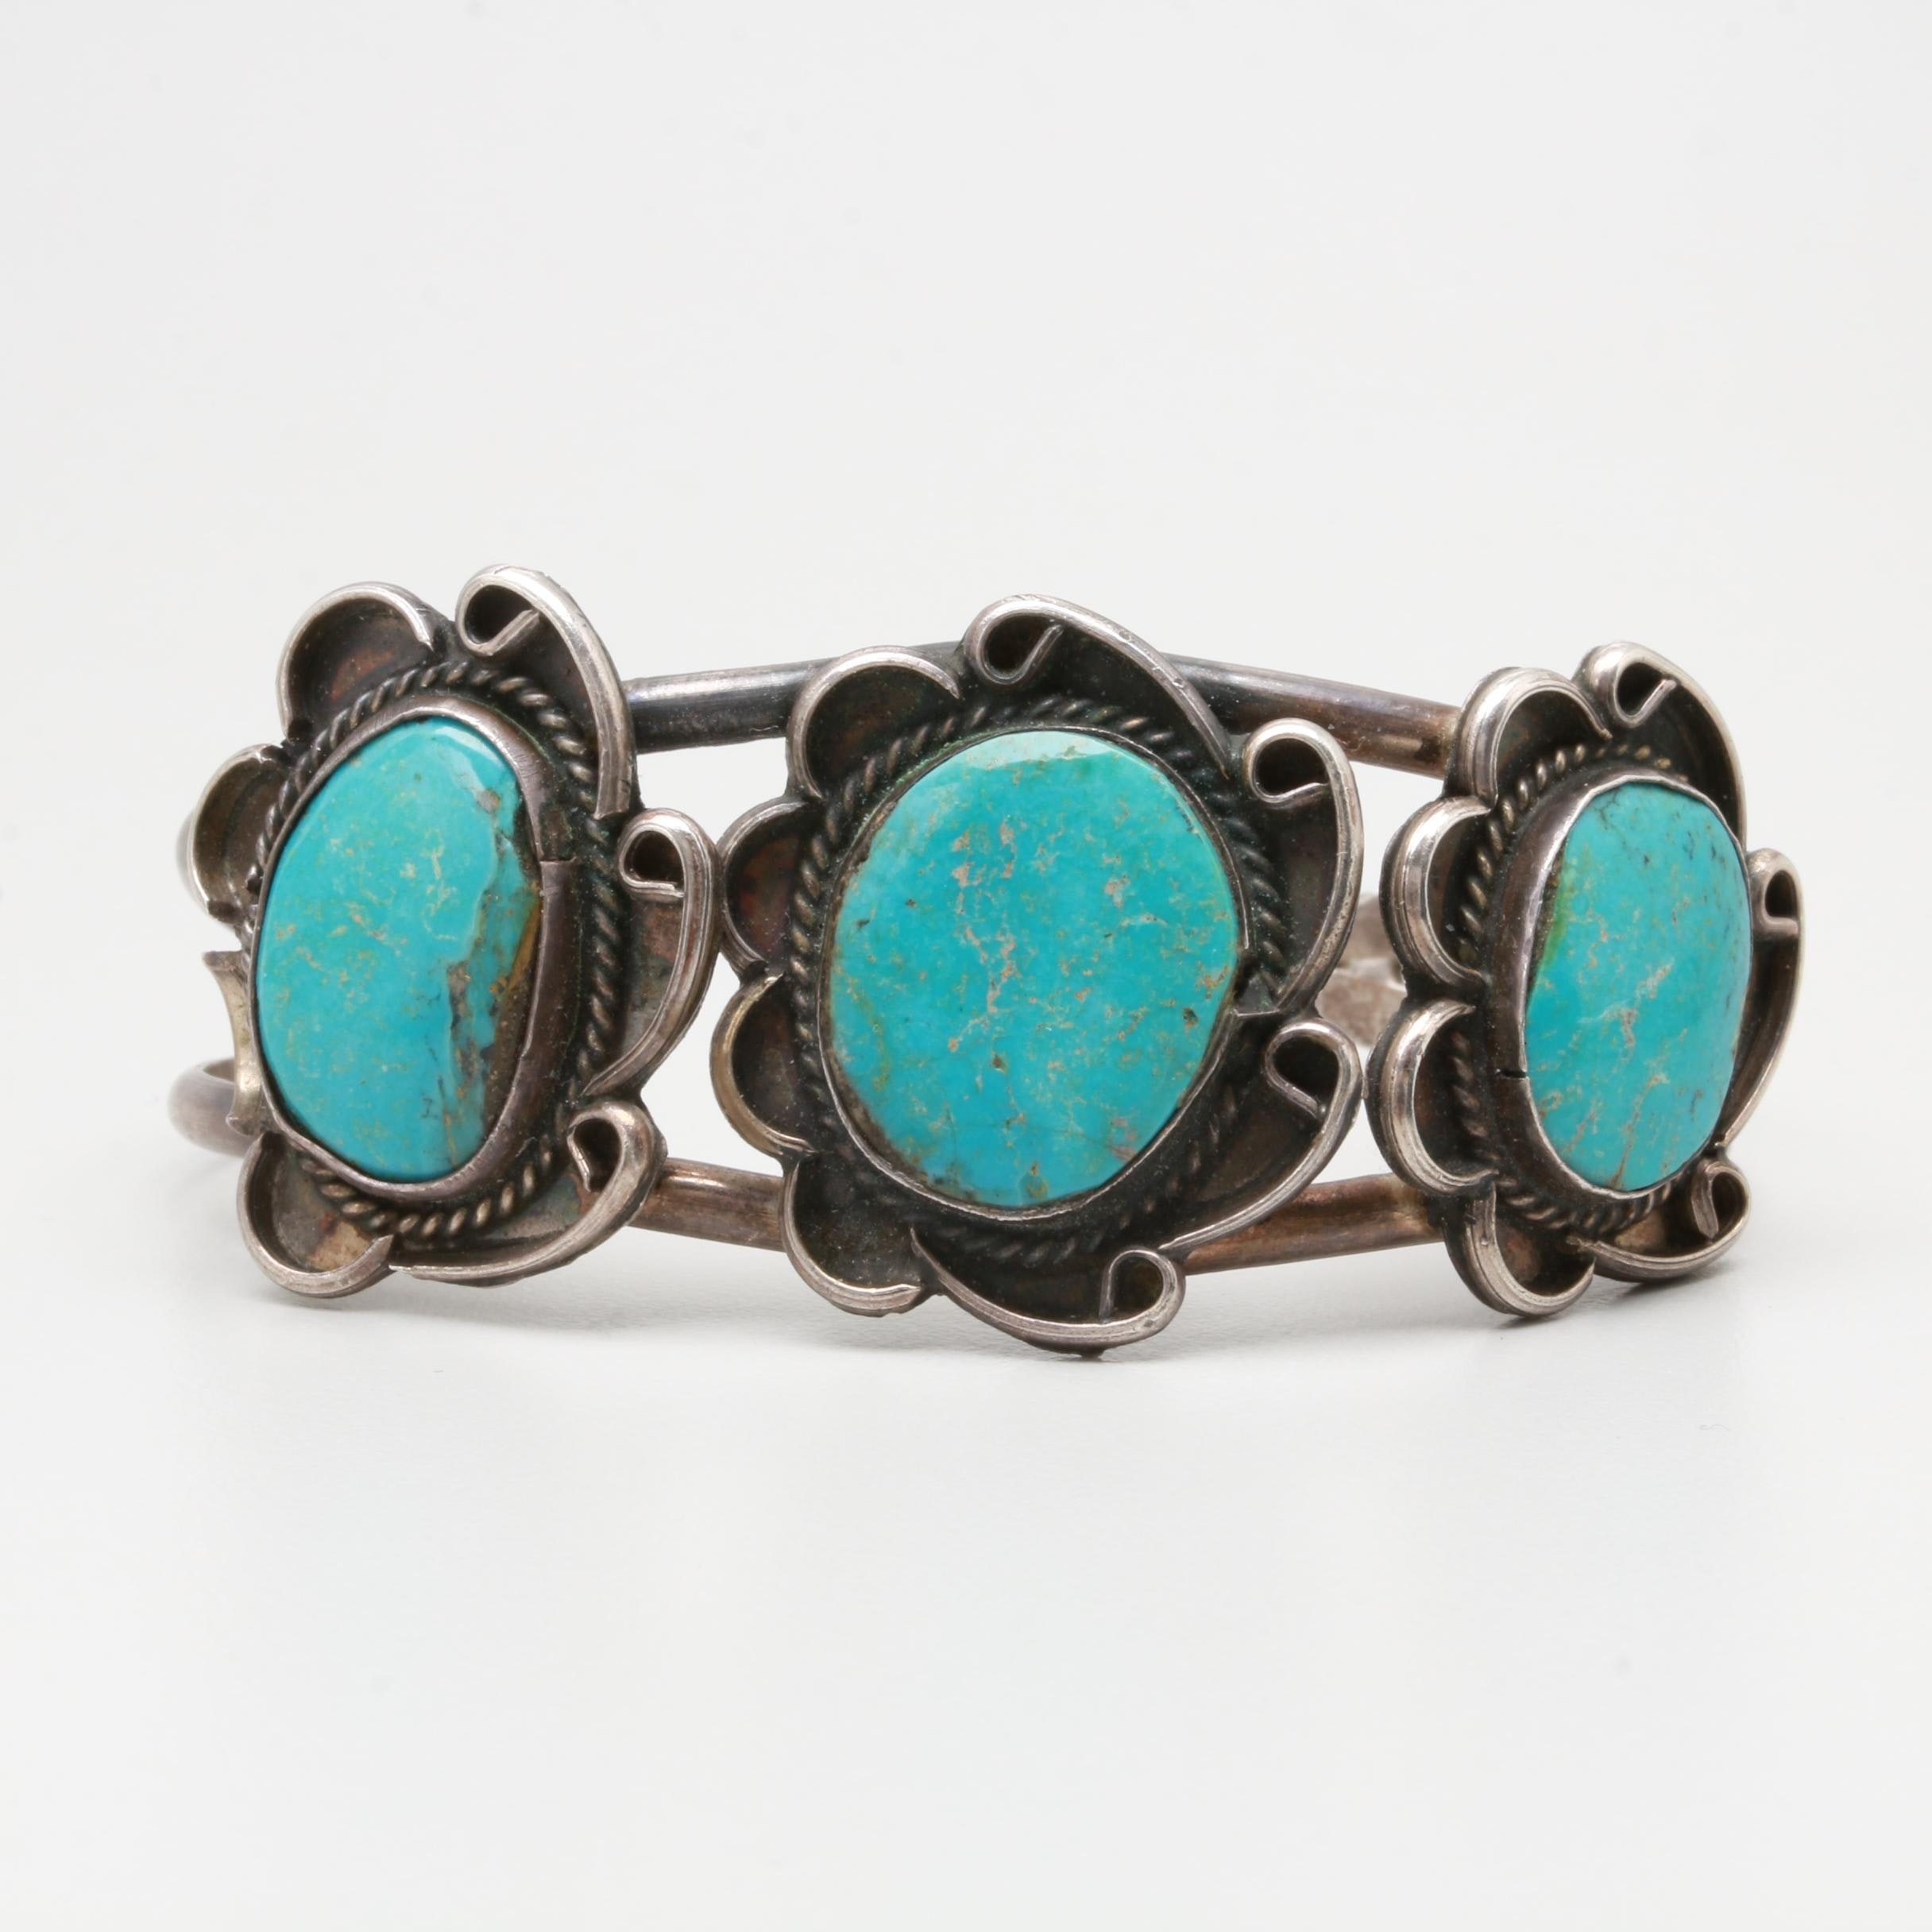 Herman Smith Navajo Diné Sterling Silver Turquoise Cuff